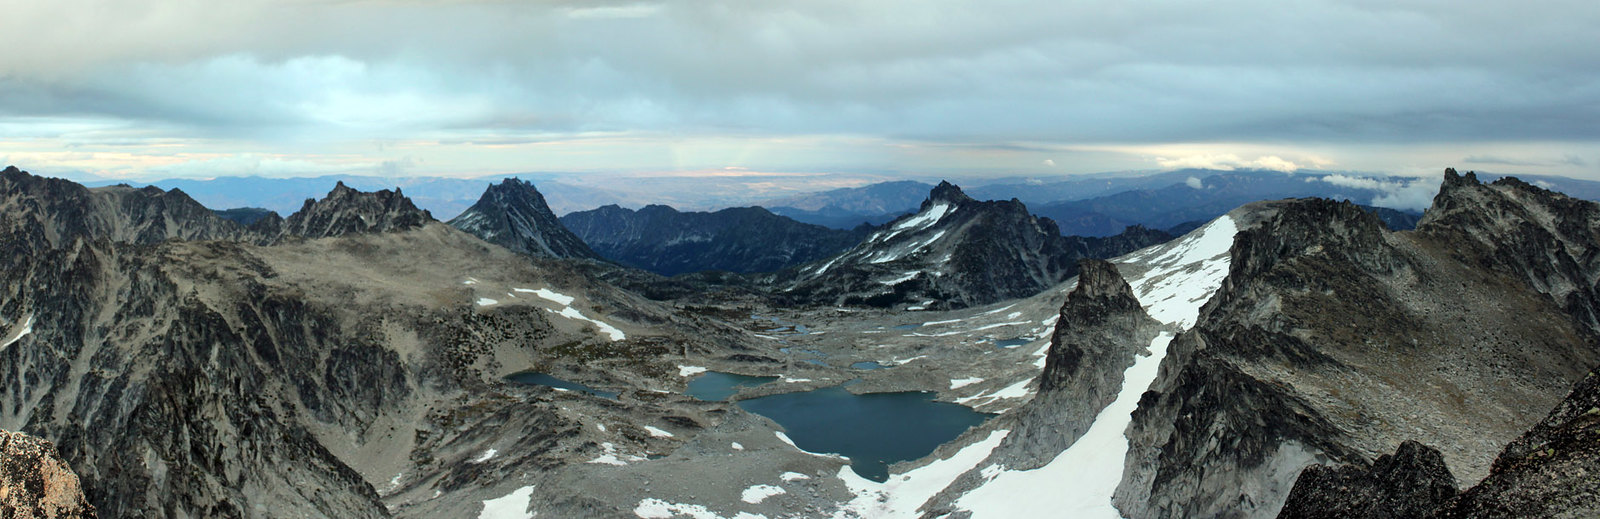 Upper Enchantments panoramic view